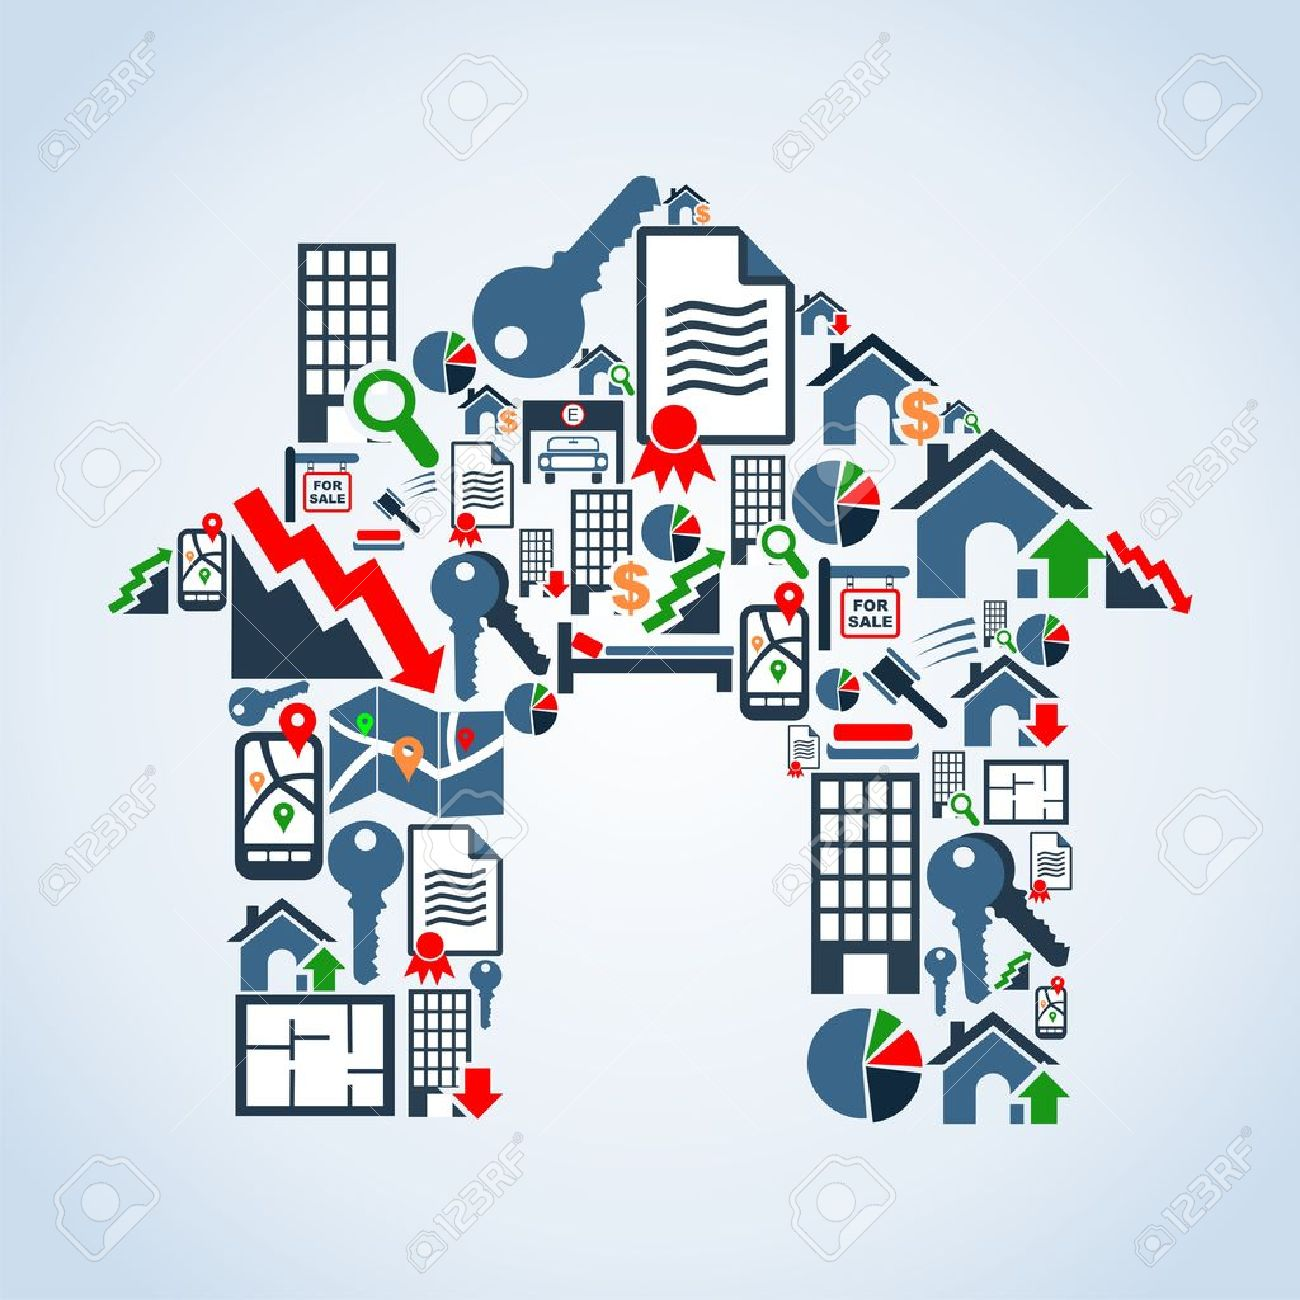 Real estate icon set in house silhouette background illustration file layered for easy manipulation and custom coloring - 13533867